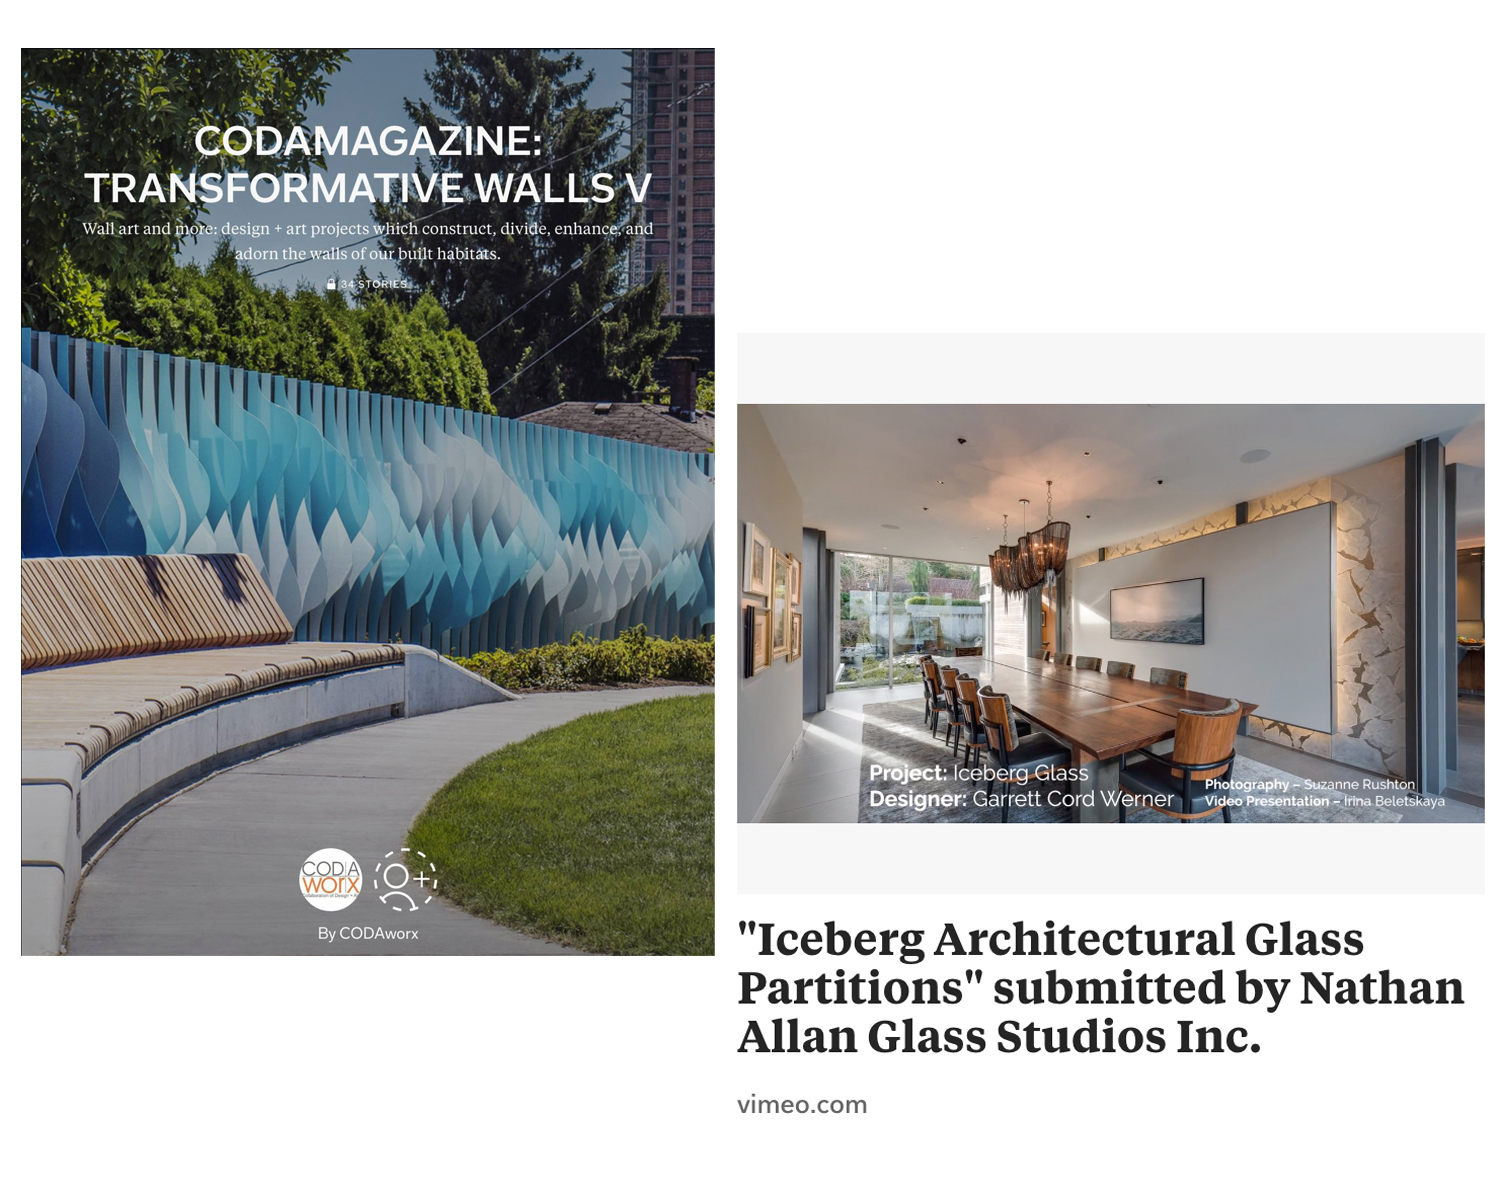 CODAmagazine | Iceberg Architectural Glass Partitions